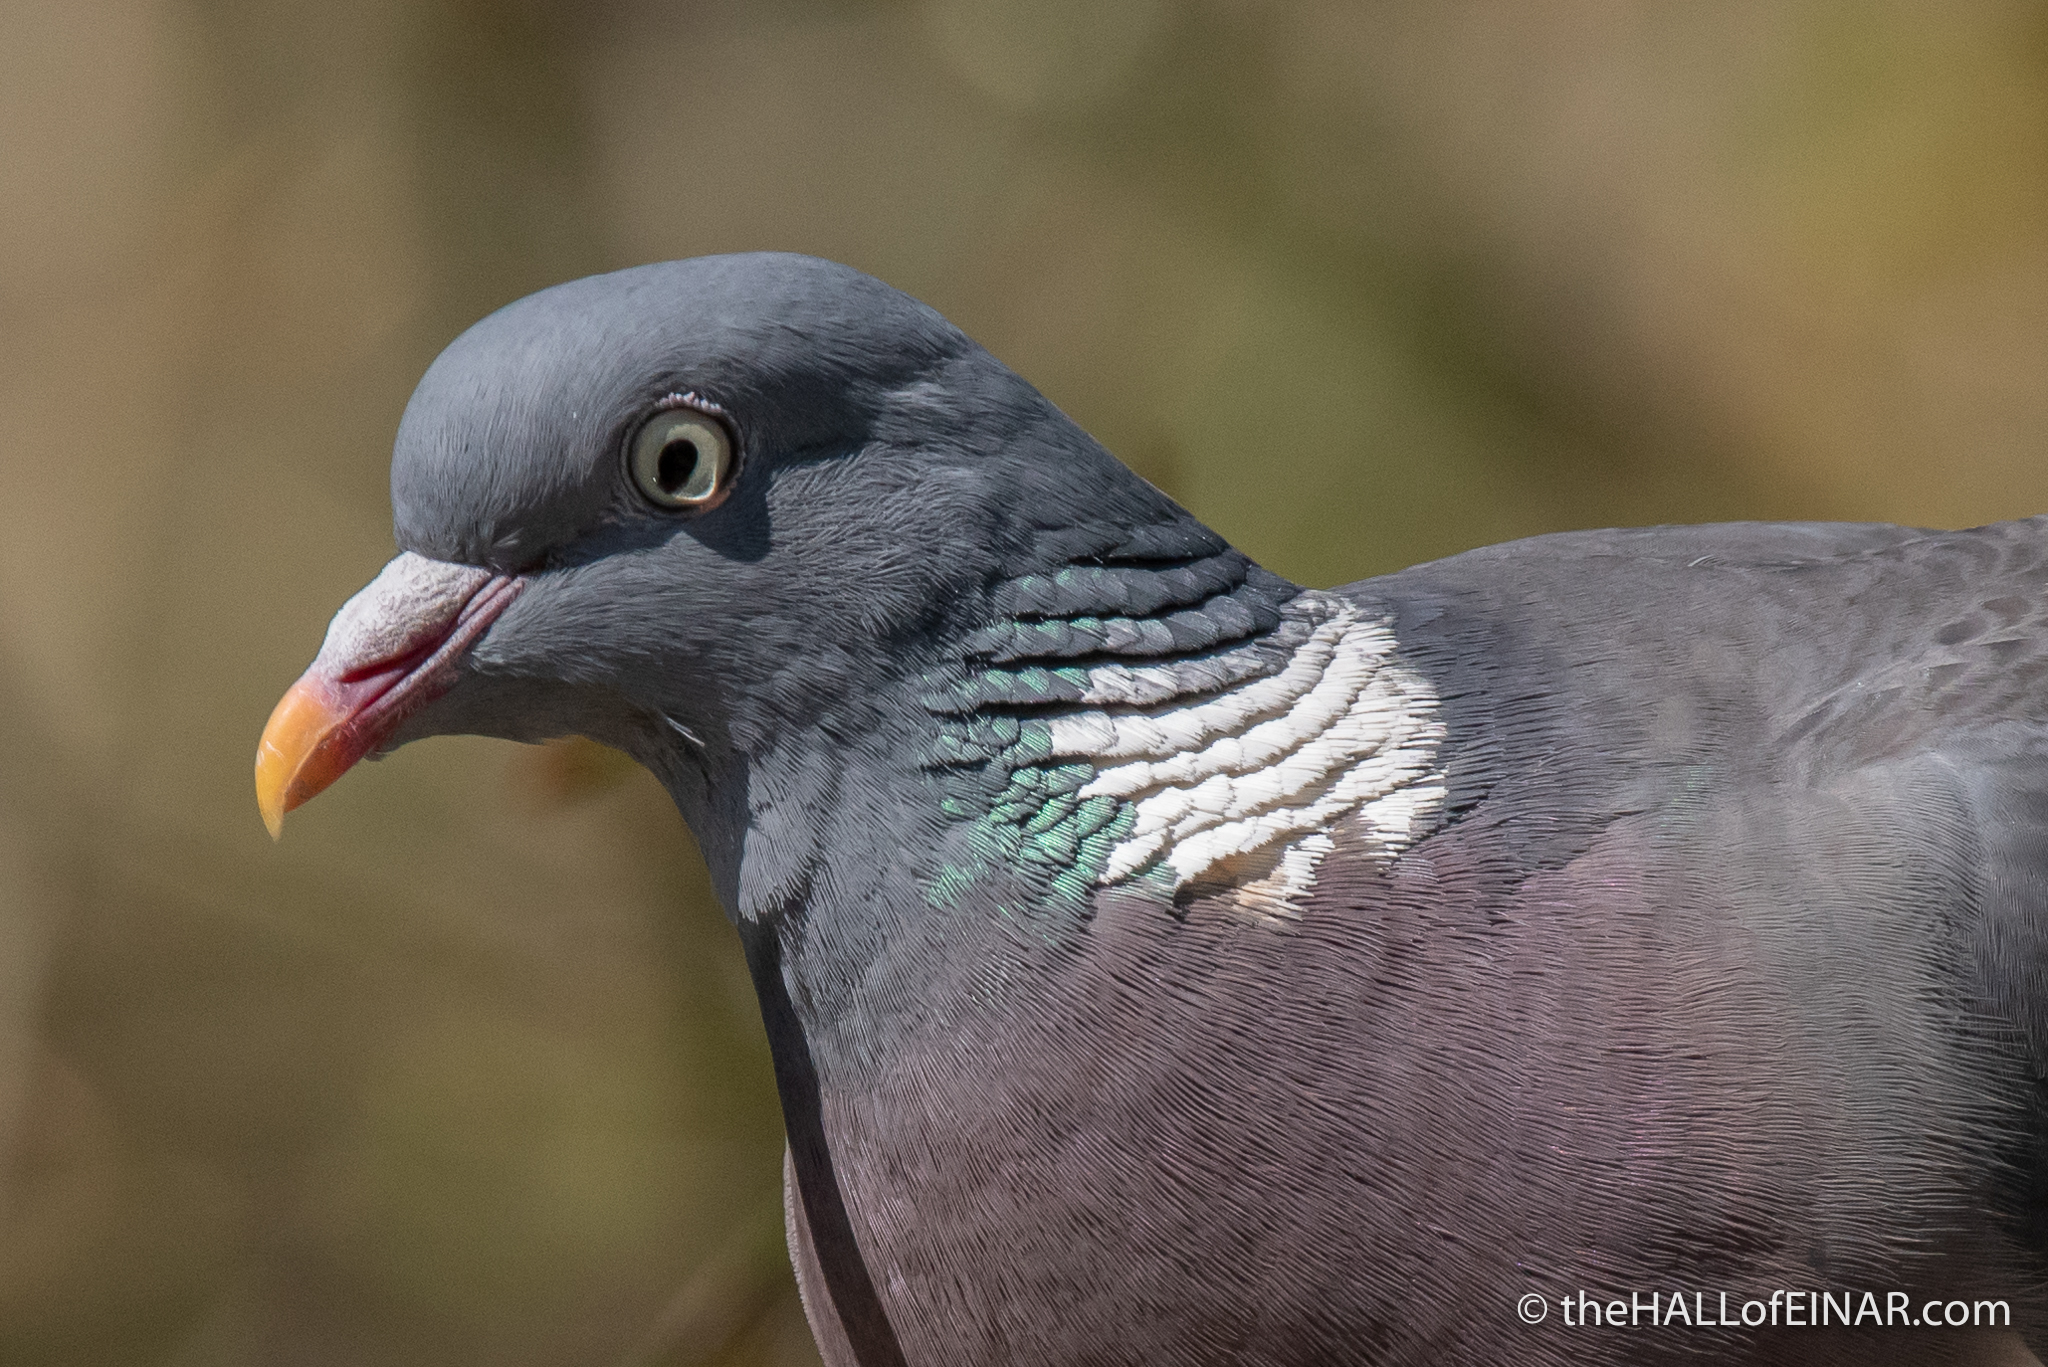 Woodpigeon - The Hall of Einar - photograph (c) David Bailey (not the)